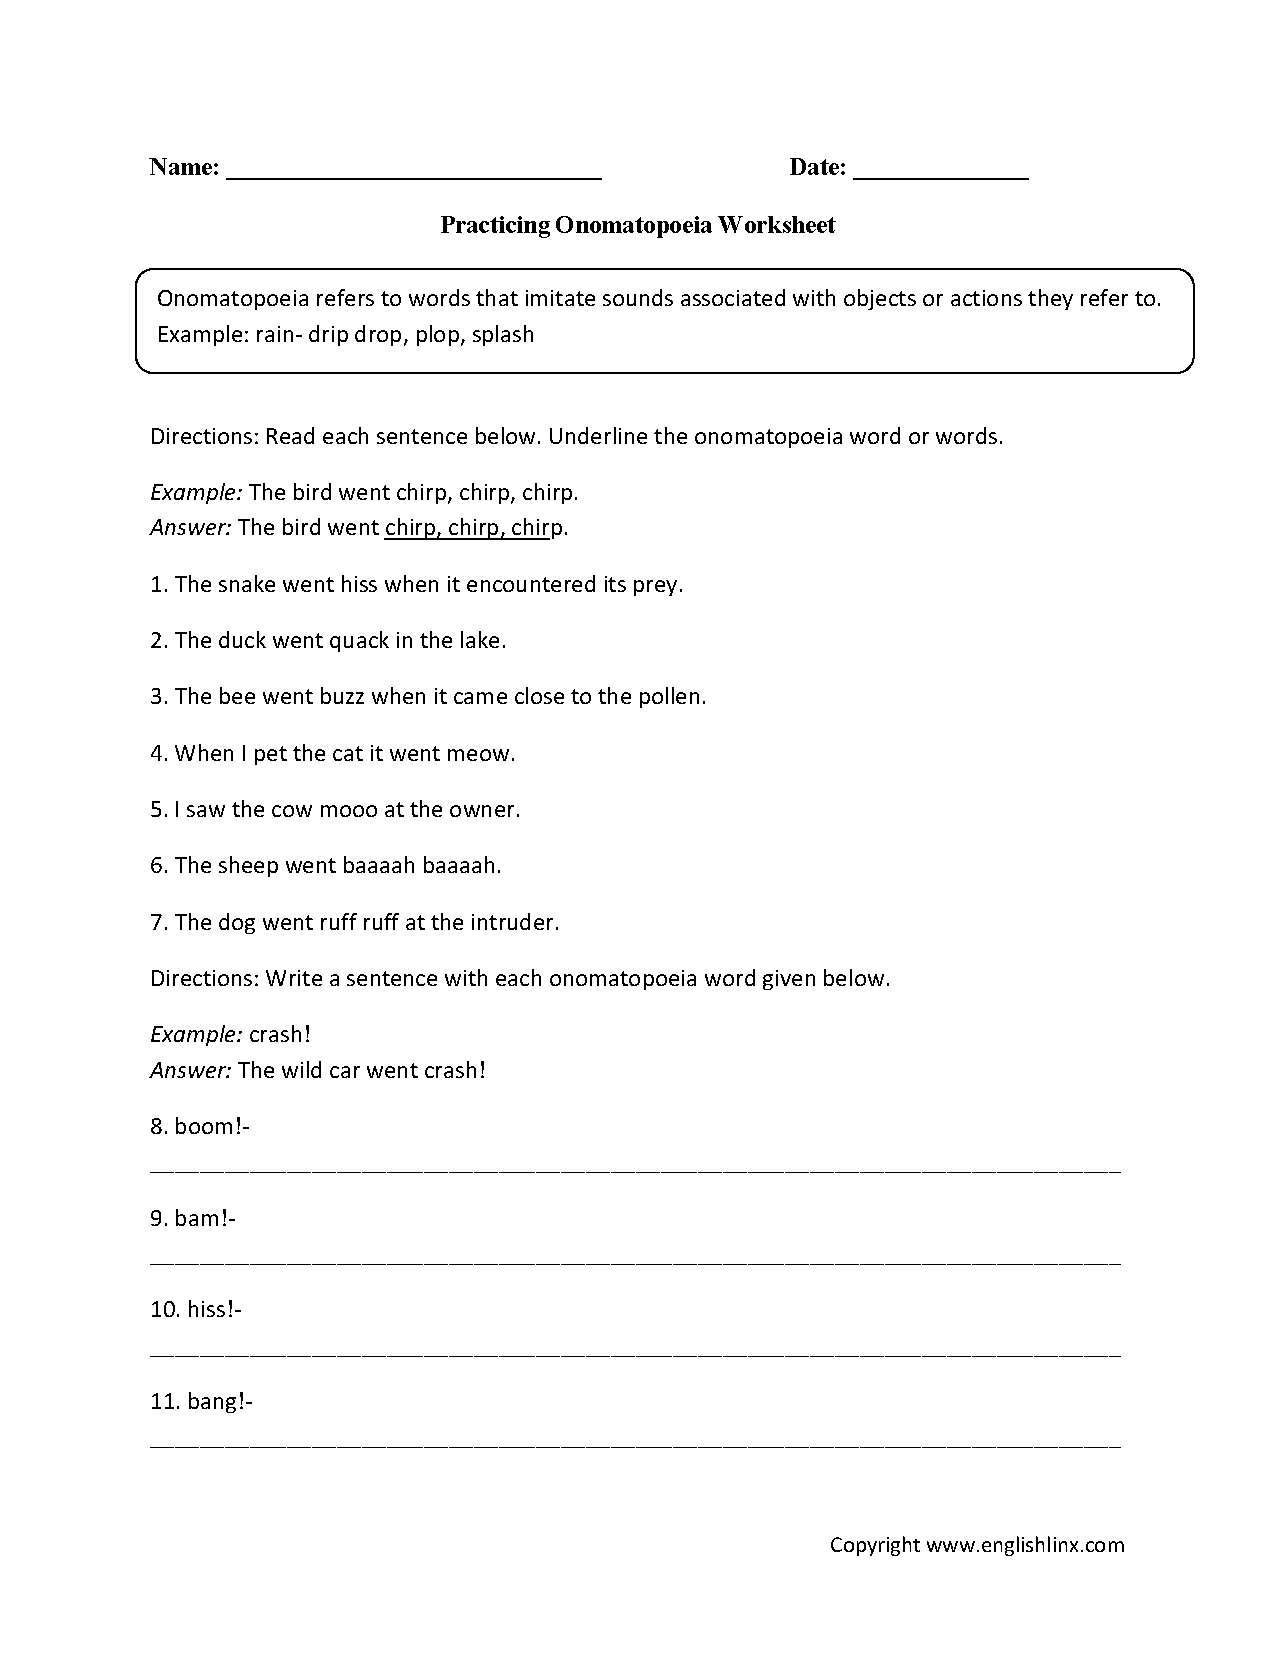 Worksheets Hyperbole Worksheets content by subject worksheets figurative language worksheets